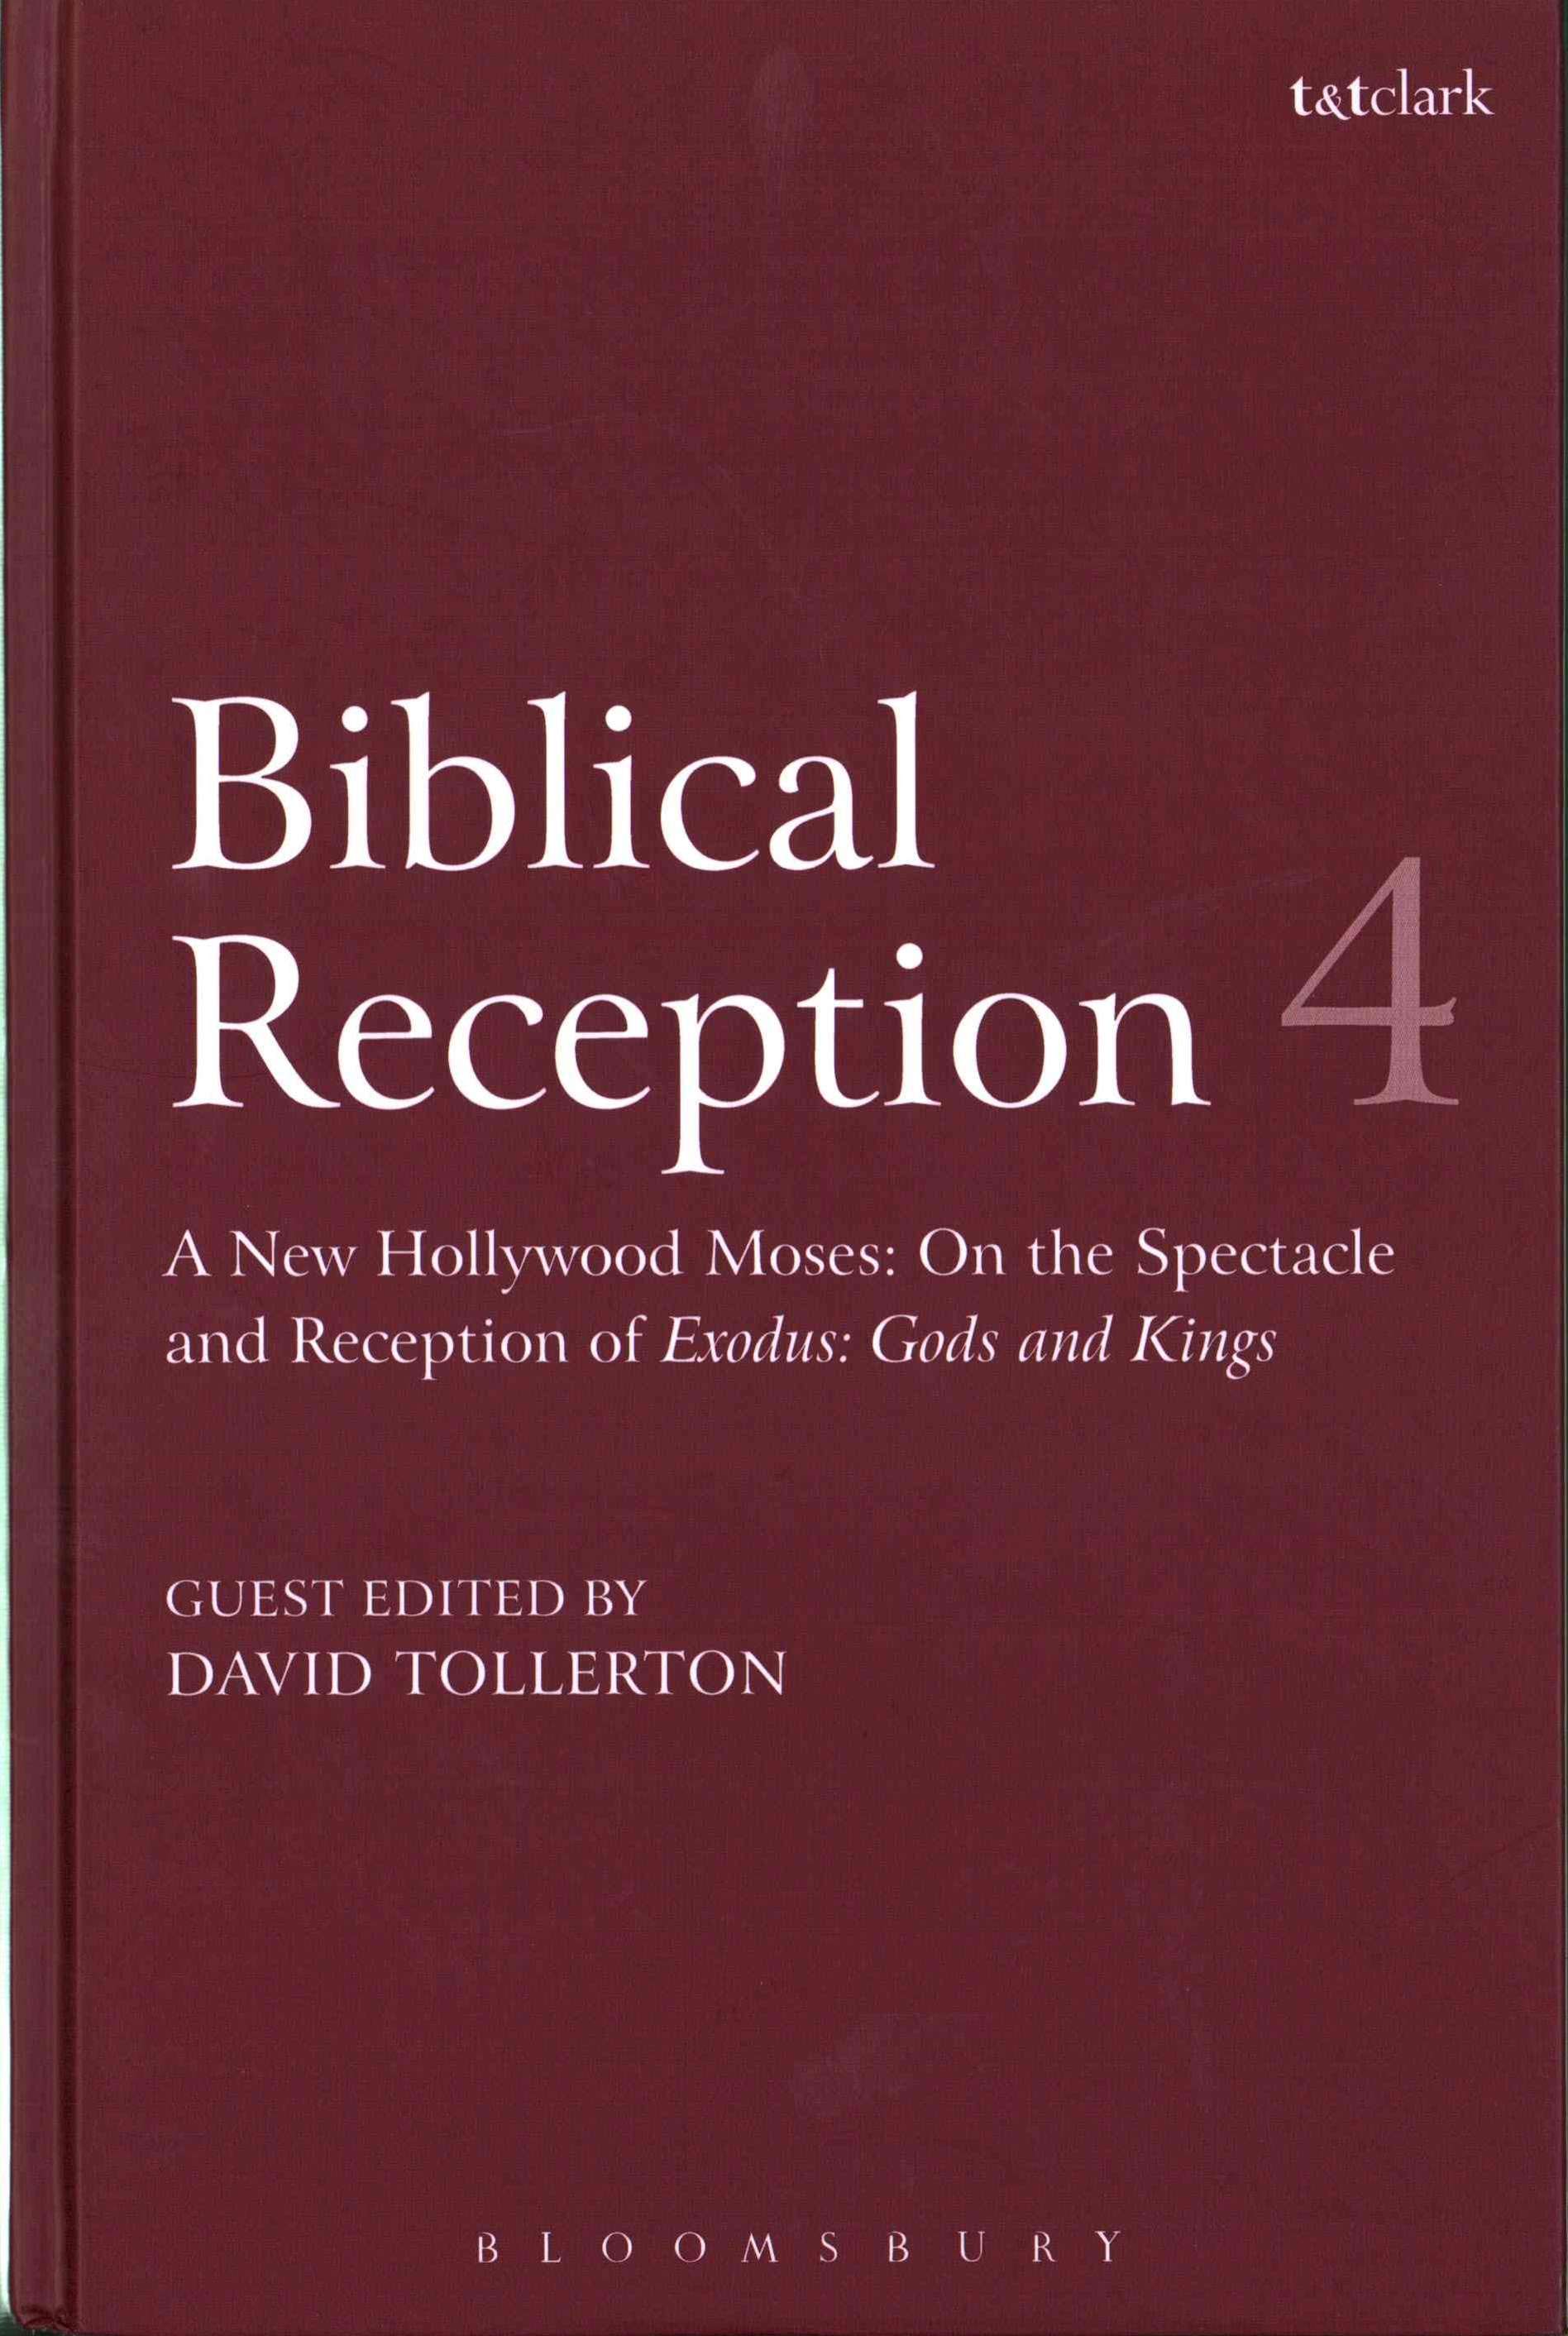 Biblical Reception